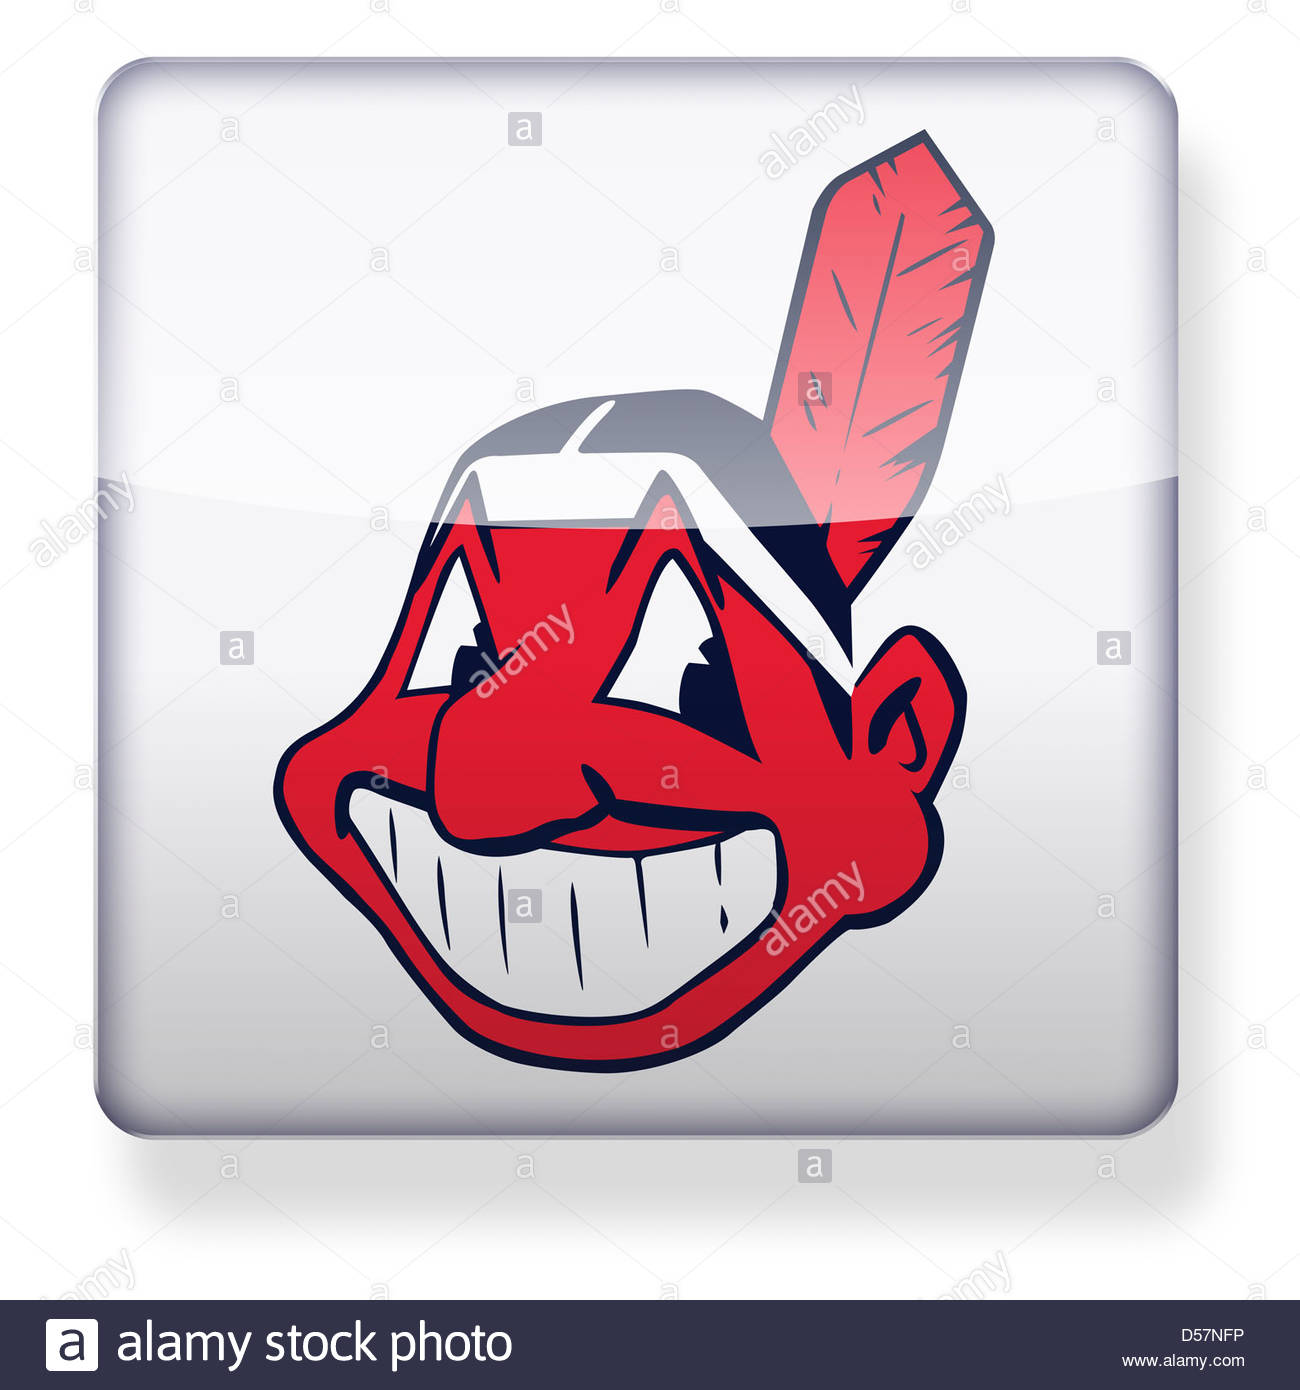 Cleveland indians logo as an app icon clipping path included cleveland indians logo as an app icon clipping path included biocorpaavc Choice Image